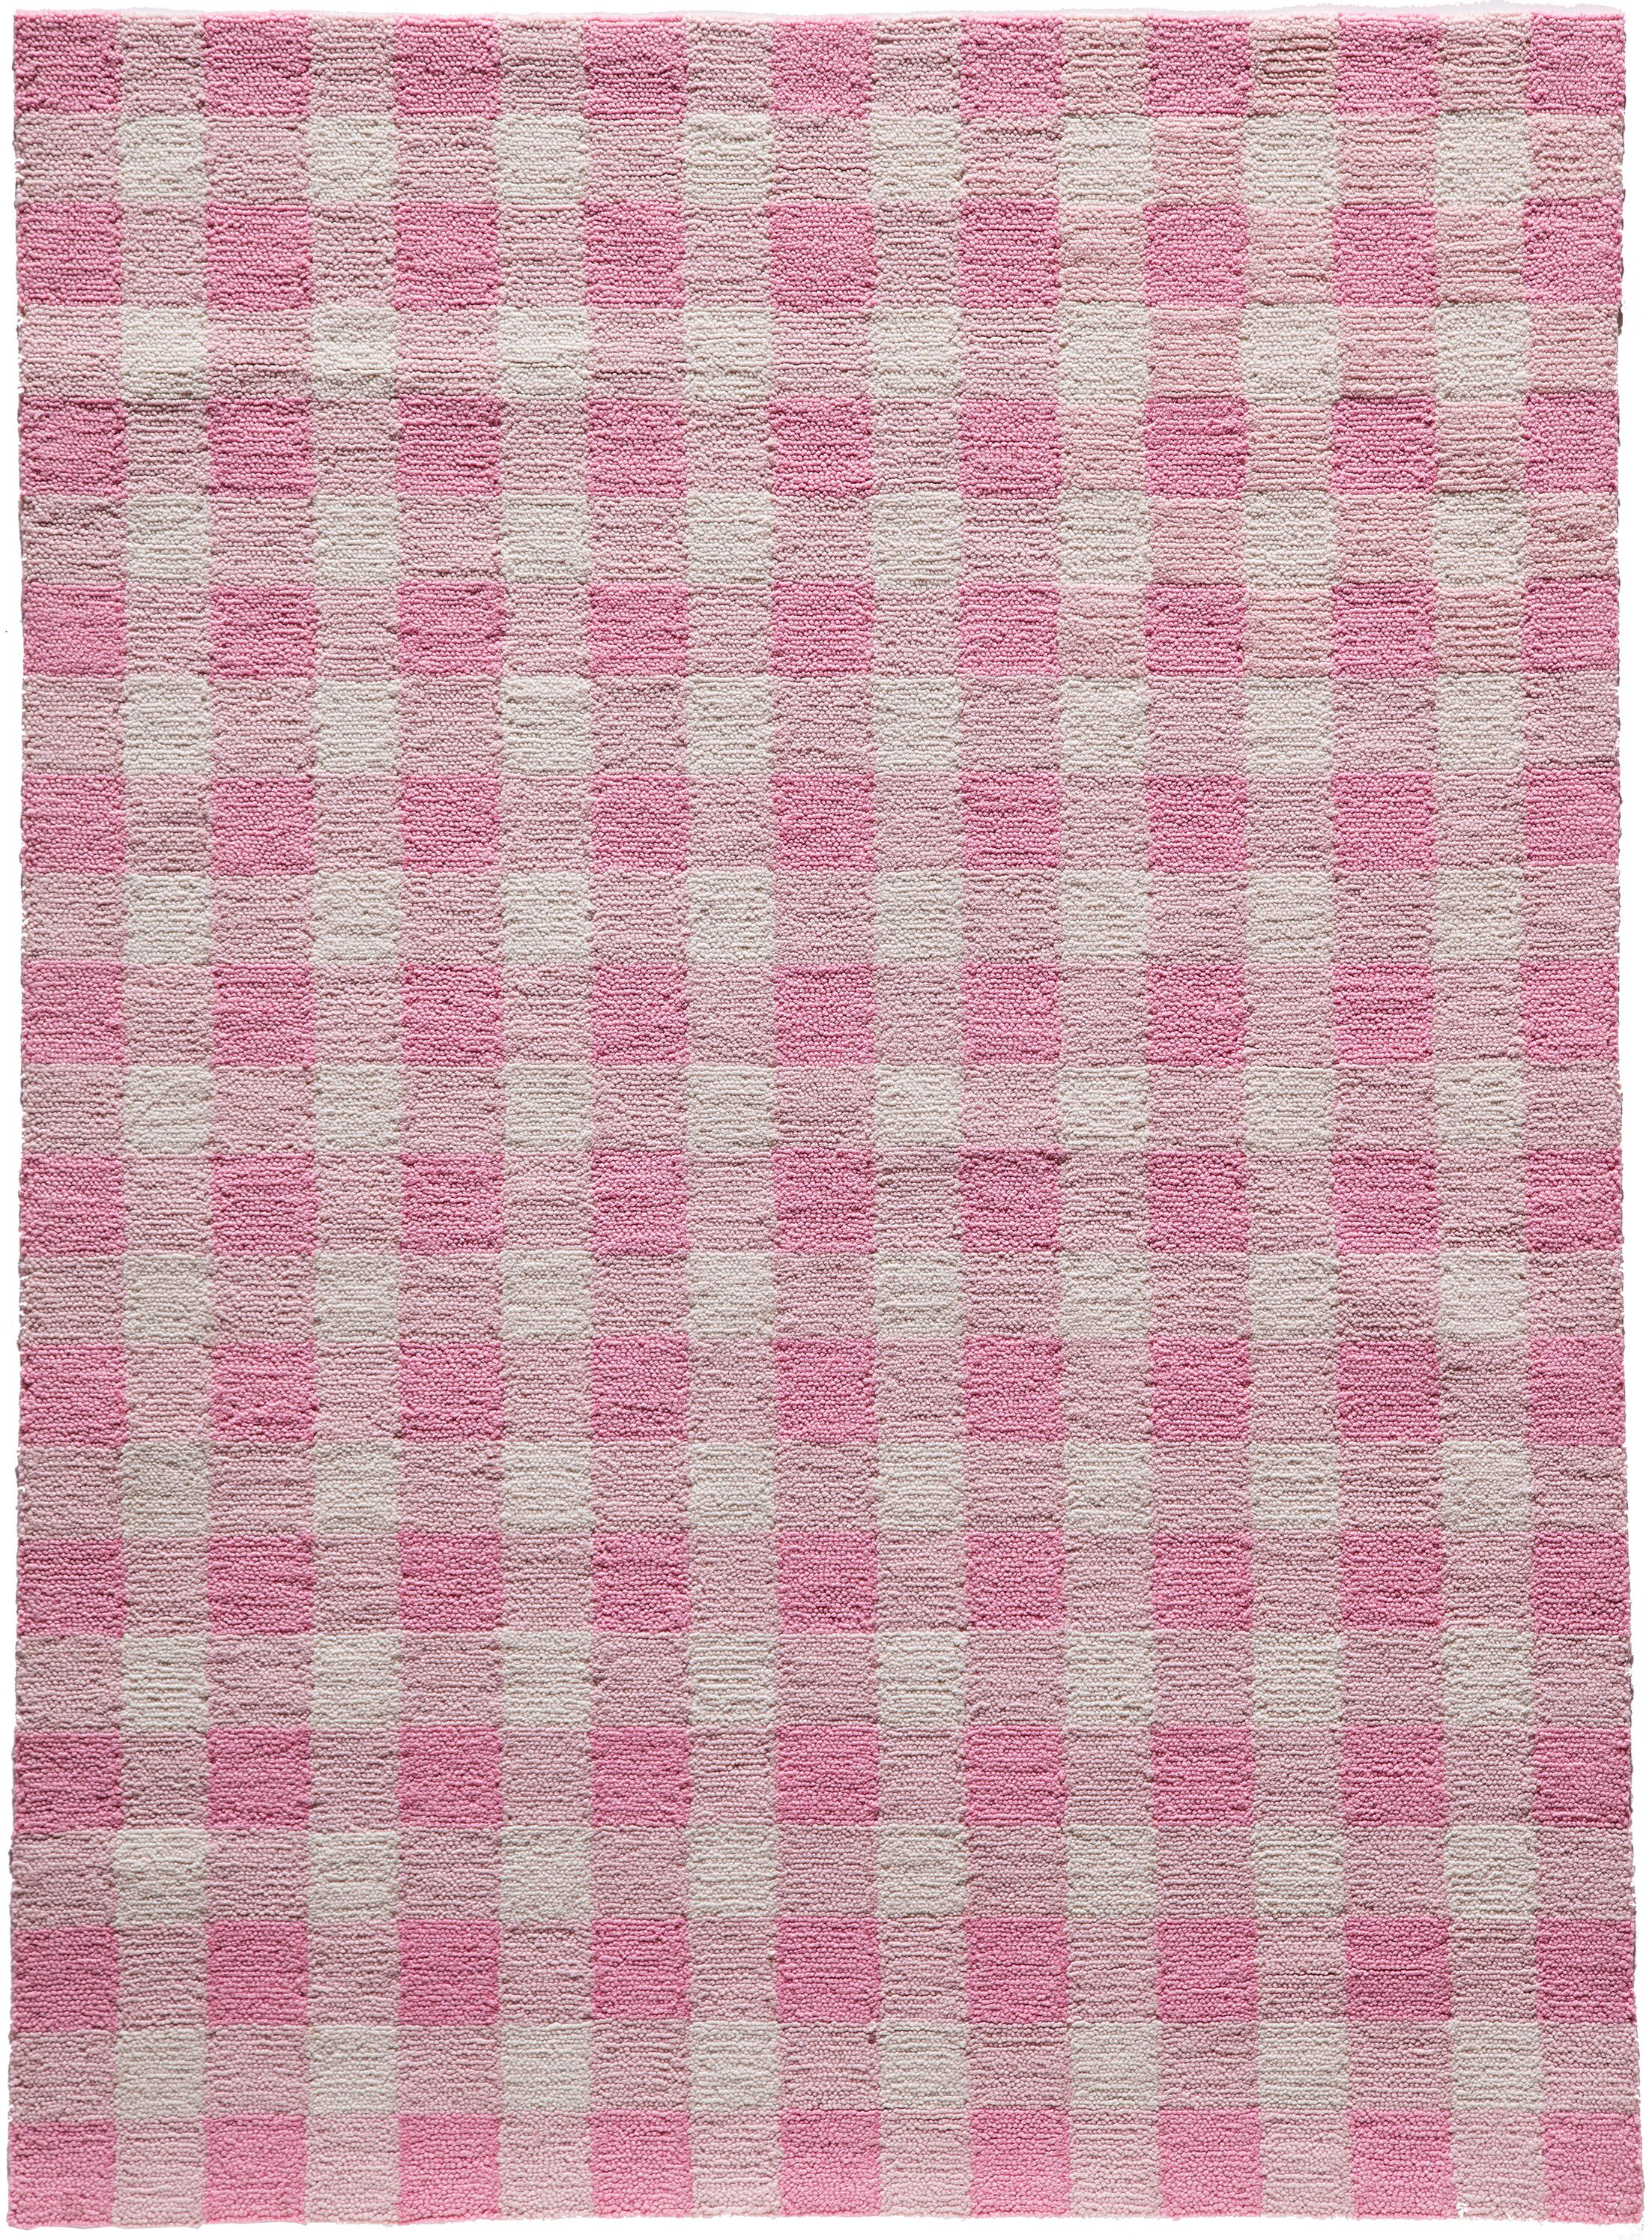 Violet Hand-Woven Pink Area Rug Rug Size: Rectangle 3'6